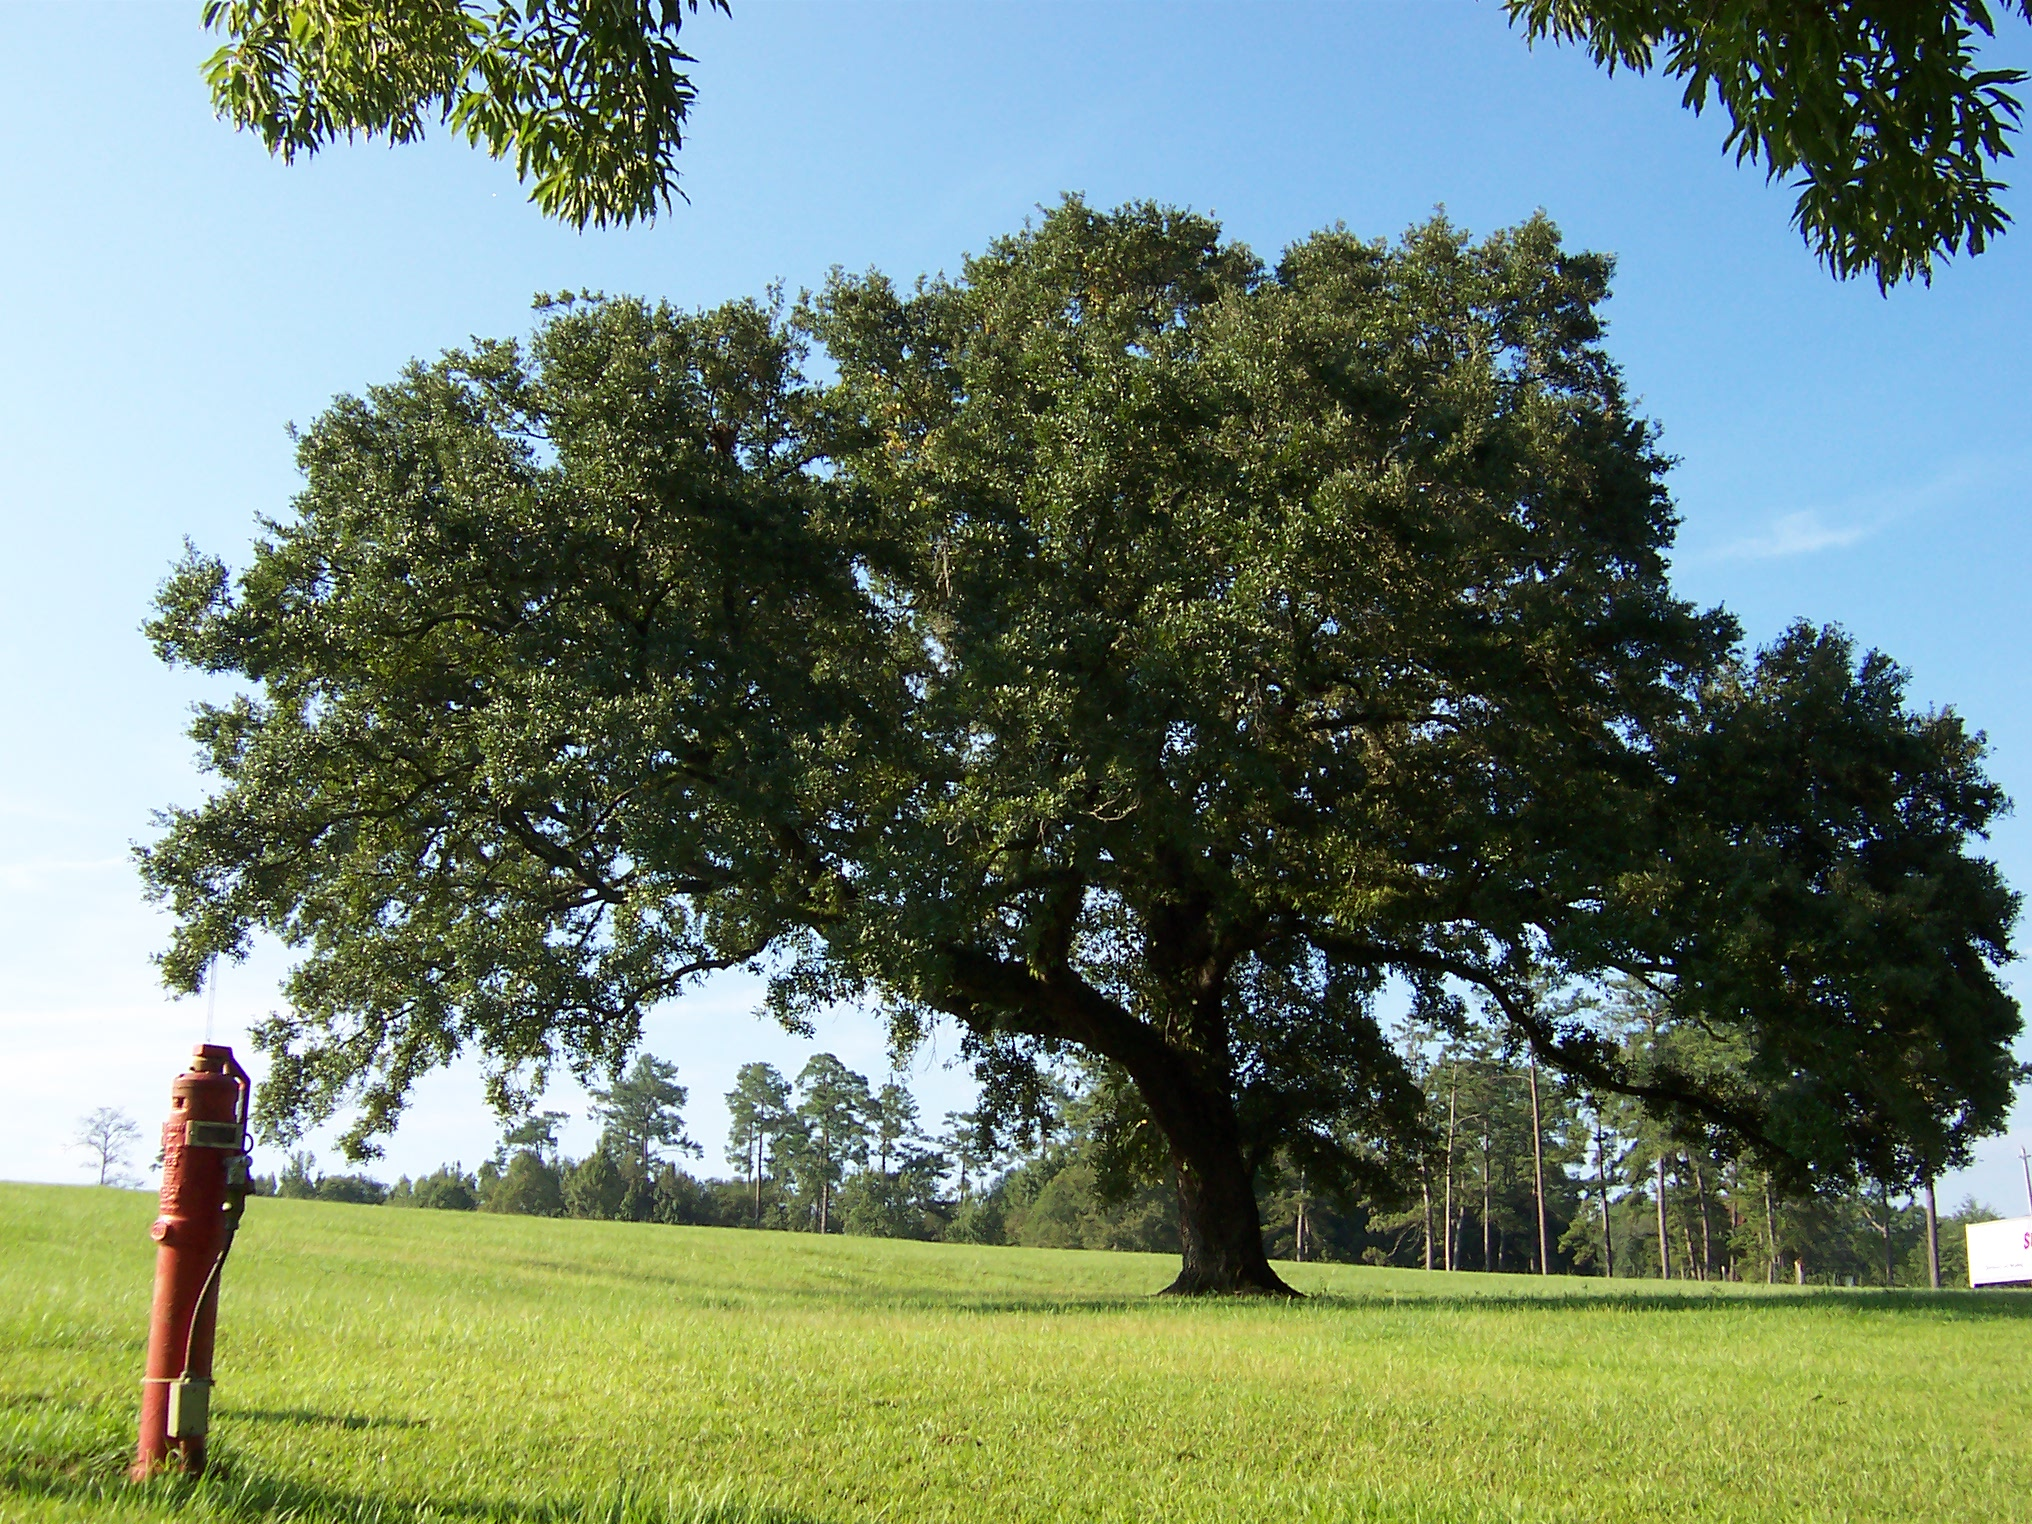 live oak dating List of oldest trees jump to  coast live oak quercus agrifolia: temecula,  was established using carbon dating and genetic matching.